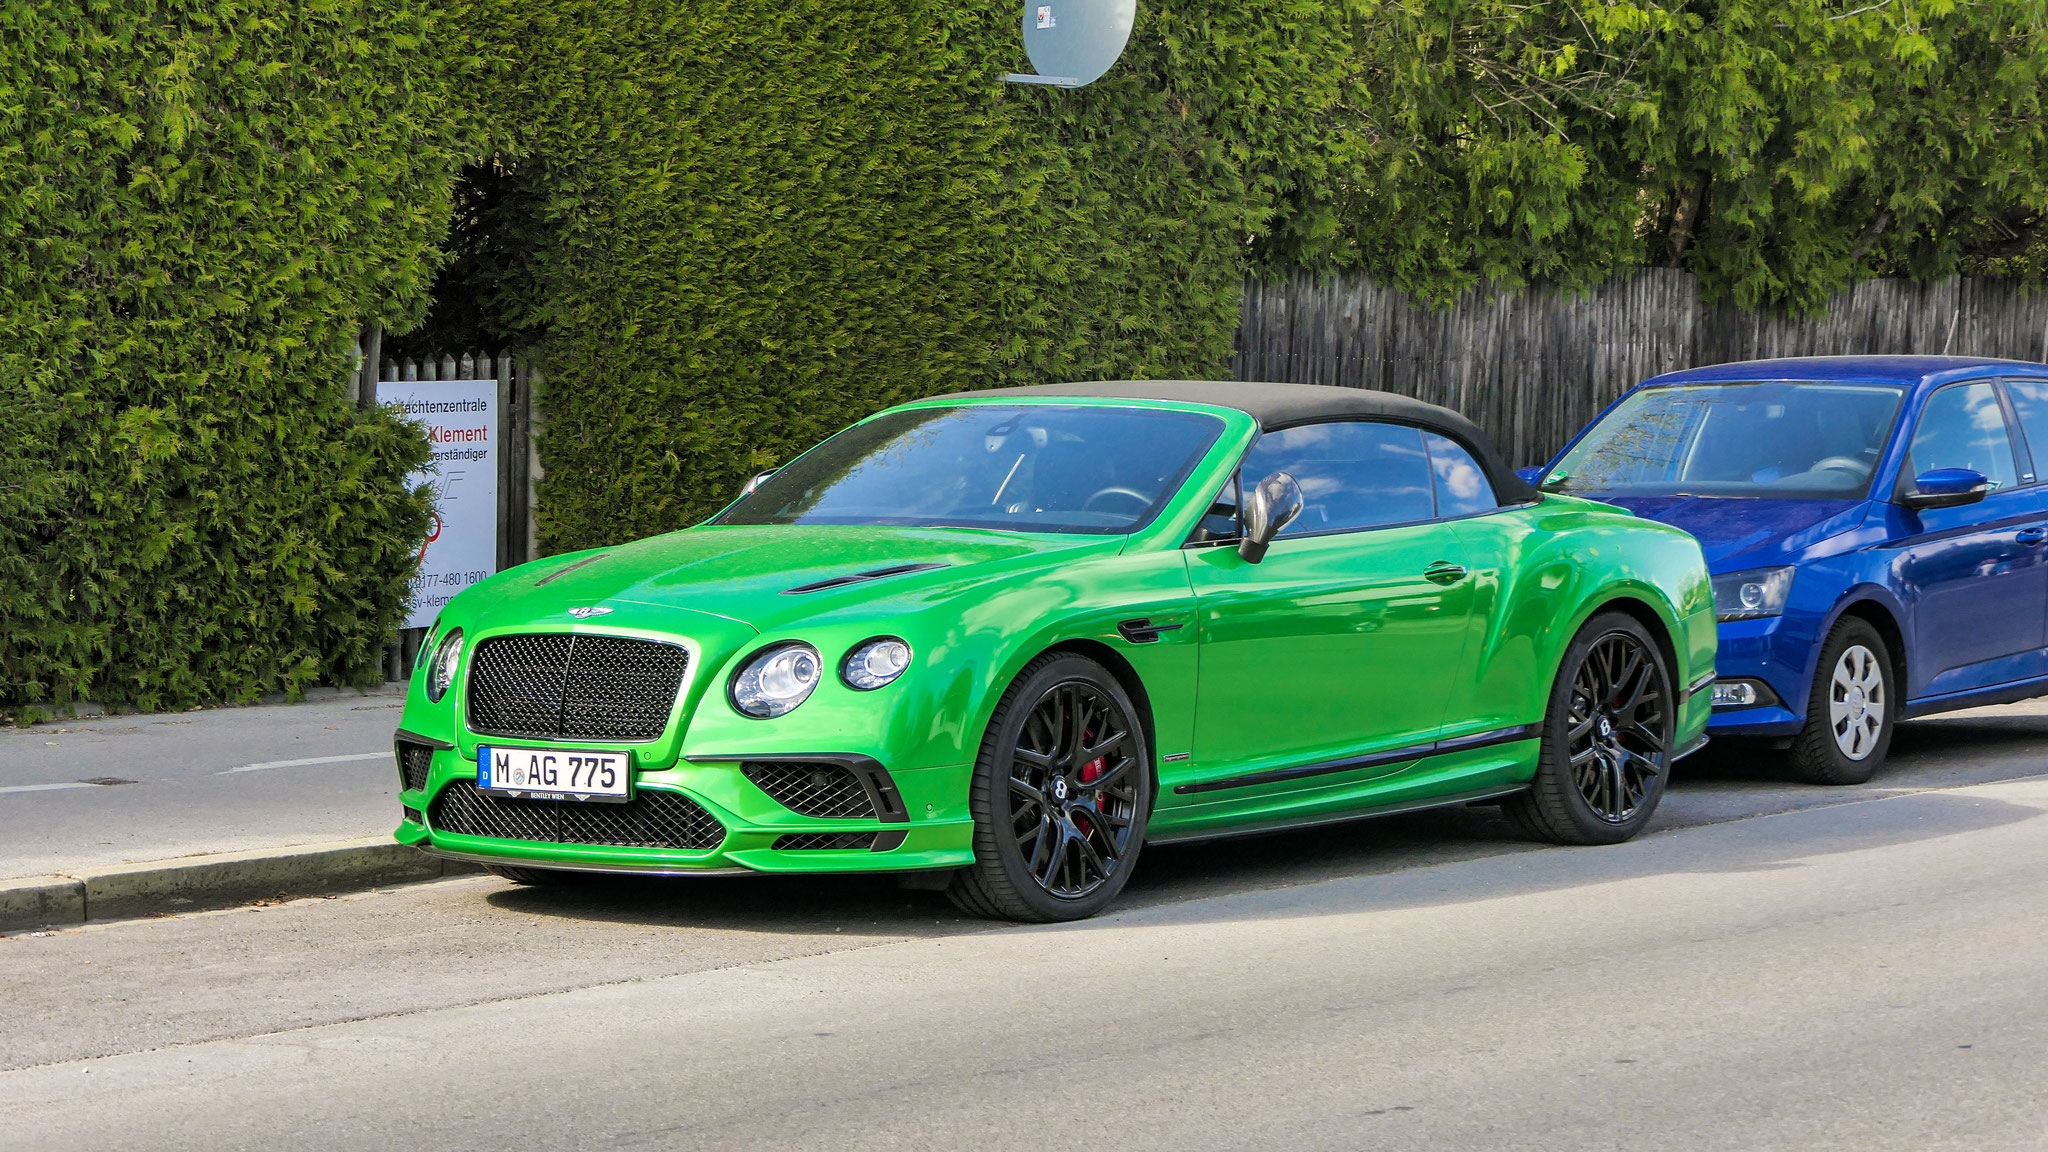 Bentley Continental GTC Supersports - M-AG-775